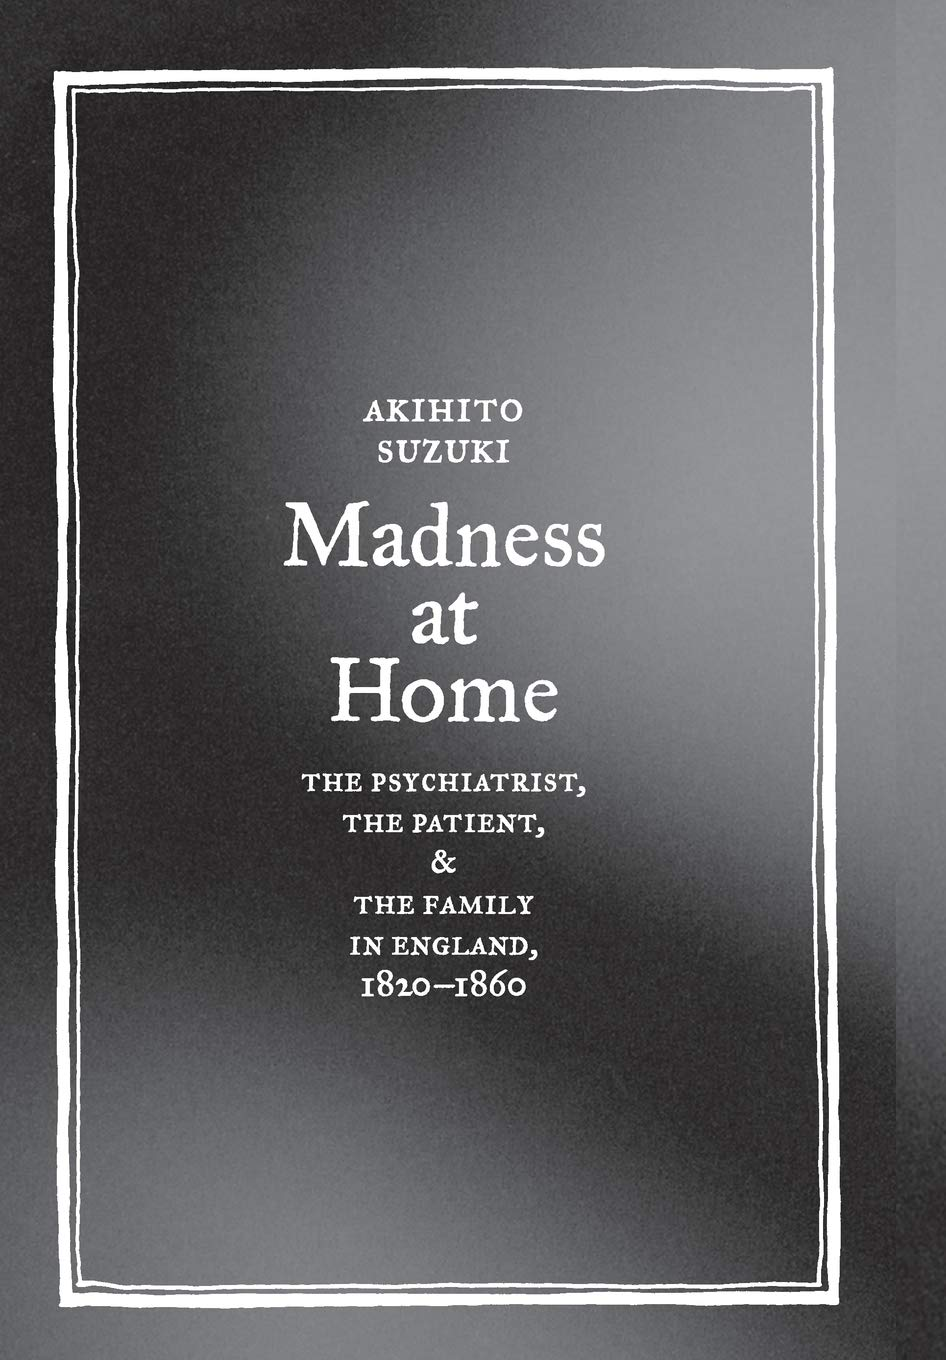 Download Madness at Home: The Psychiatrist, the Patient, and the Family in England, 1820-1860 (Medicine and Society) PDF